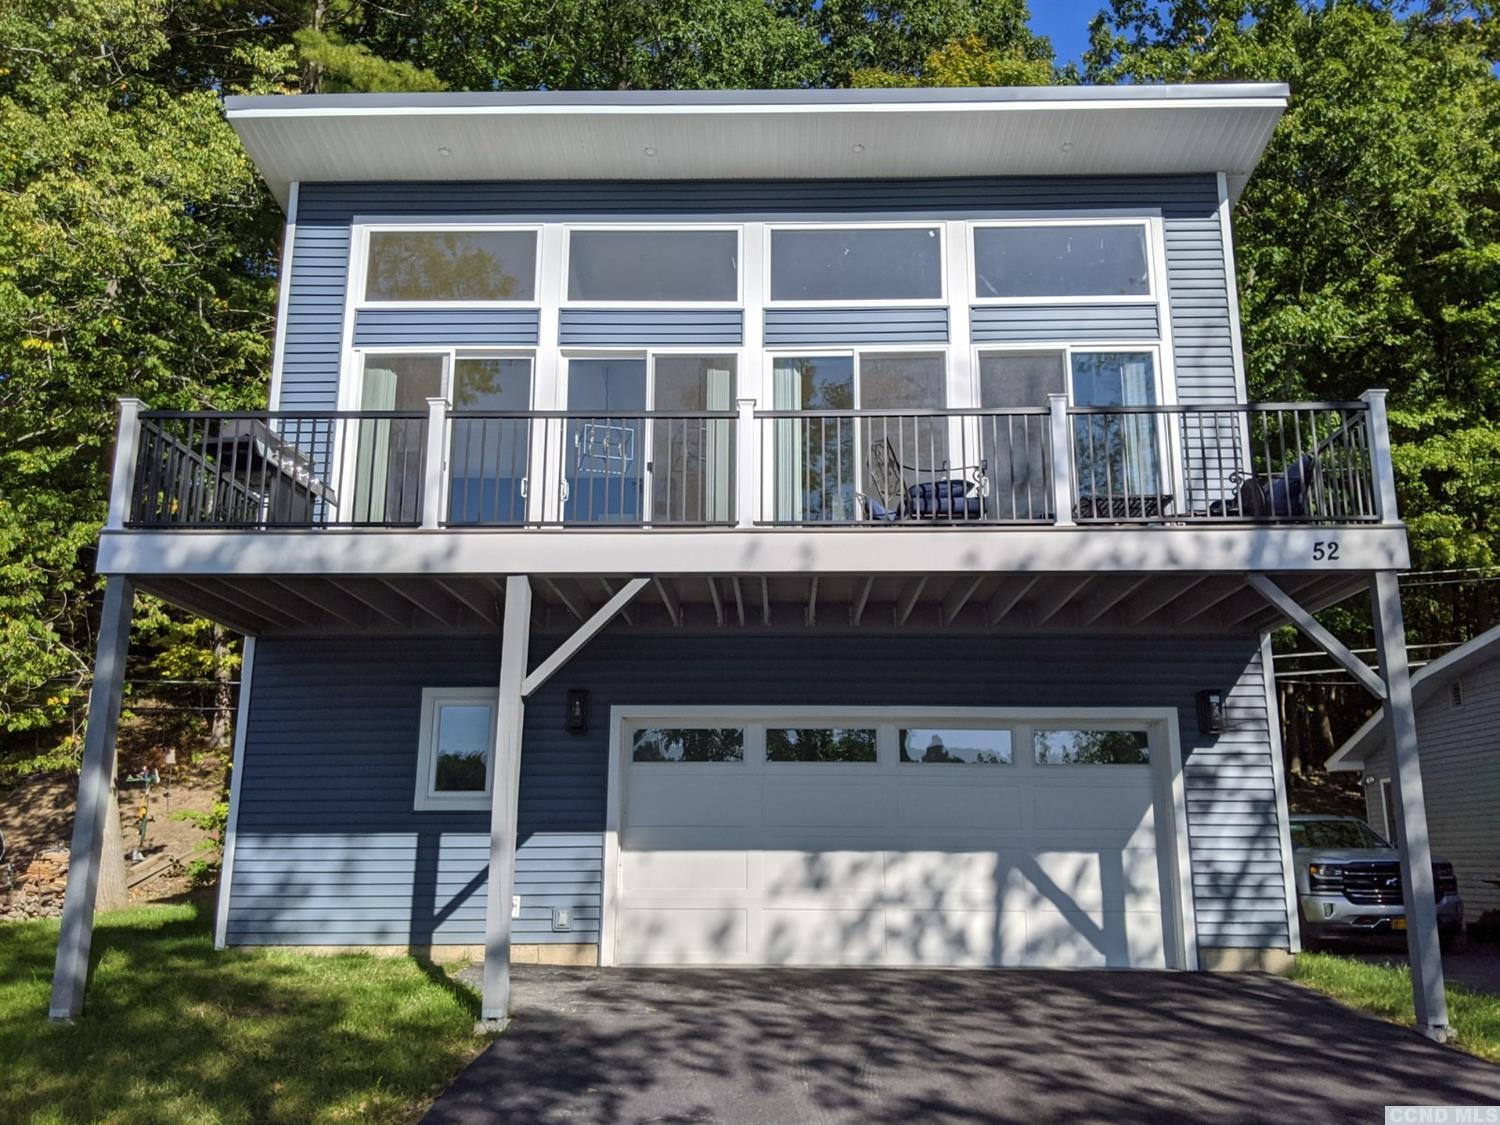 Contemporary home, newly built in 2020. Words can not describe the feeling of this truly unique lakefront home. The 4 giant sliding glass doors with over-sized transoms lead onto the 2nd level deck overlooking the lake, blending indoor/outdoor living. The 14 foot vaulted ceiling adds to the feeling of open space. Home features knotty pine flooring, shiplap ceiling, floor to ceiling stacked stone gas fireplace, modern cabinetry, backsplash, composite deck, custom lighting/ceiling fans, full bath on second floor, custom vanity, 1/2 bath on first w/exterior access, over-sized garage, tankless hot water, central air, propane heat. Dock has built-in benches and slab for firepit. The house is on a one lane, dead end street with a 15 MPH speed lim